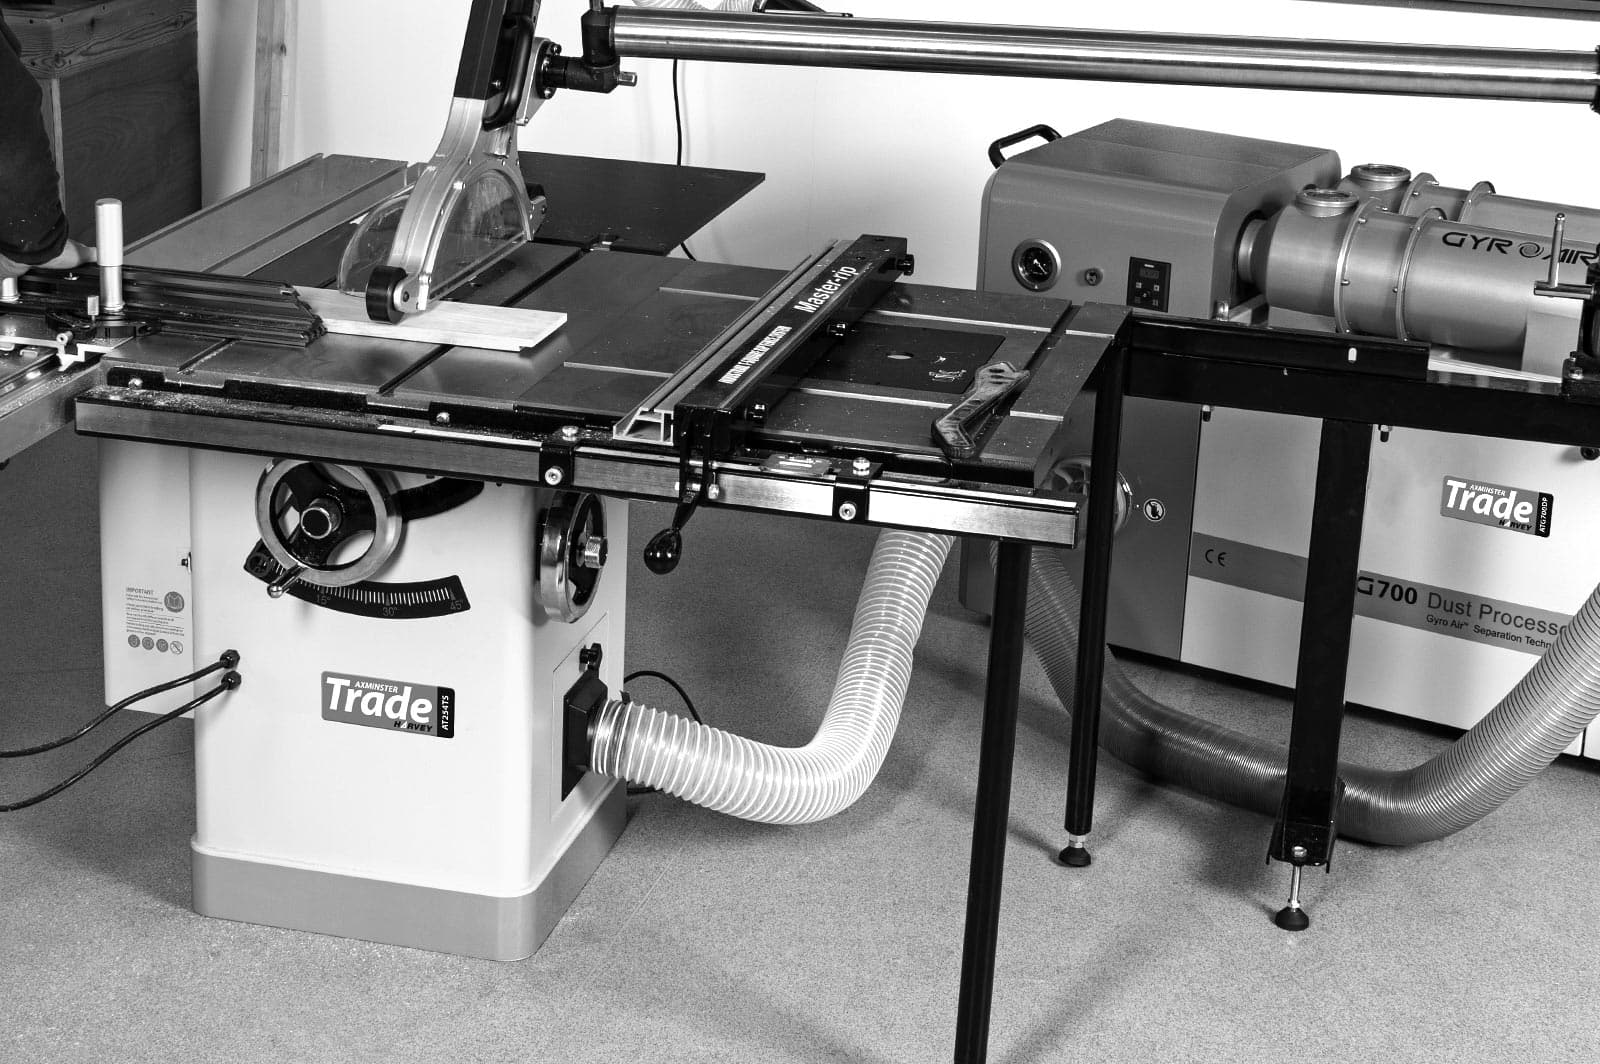 New Axminster Trade table saw